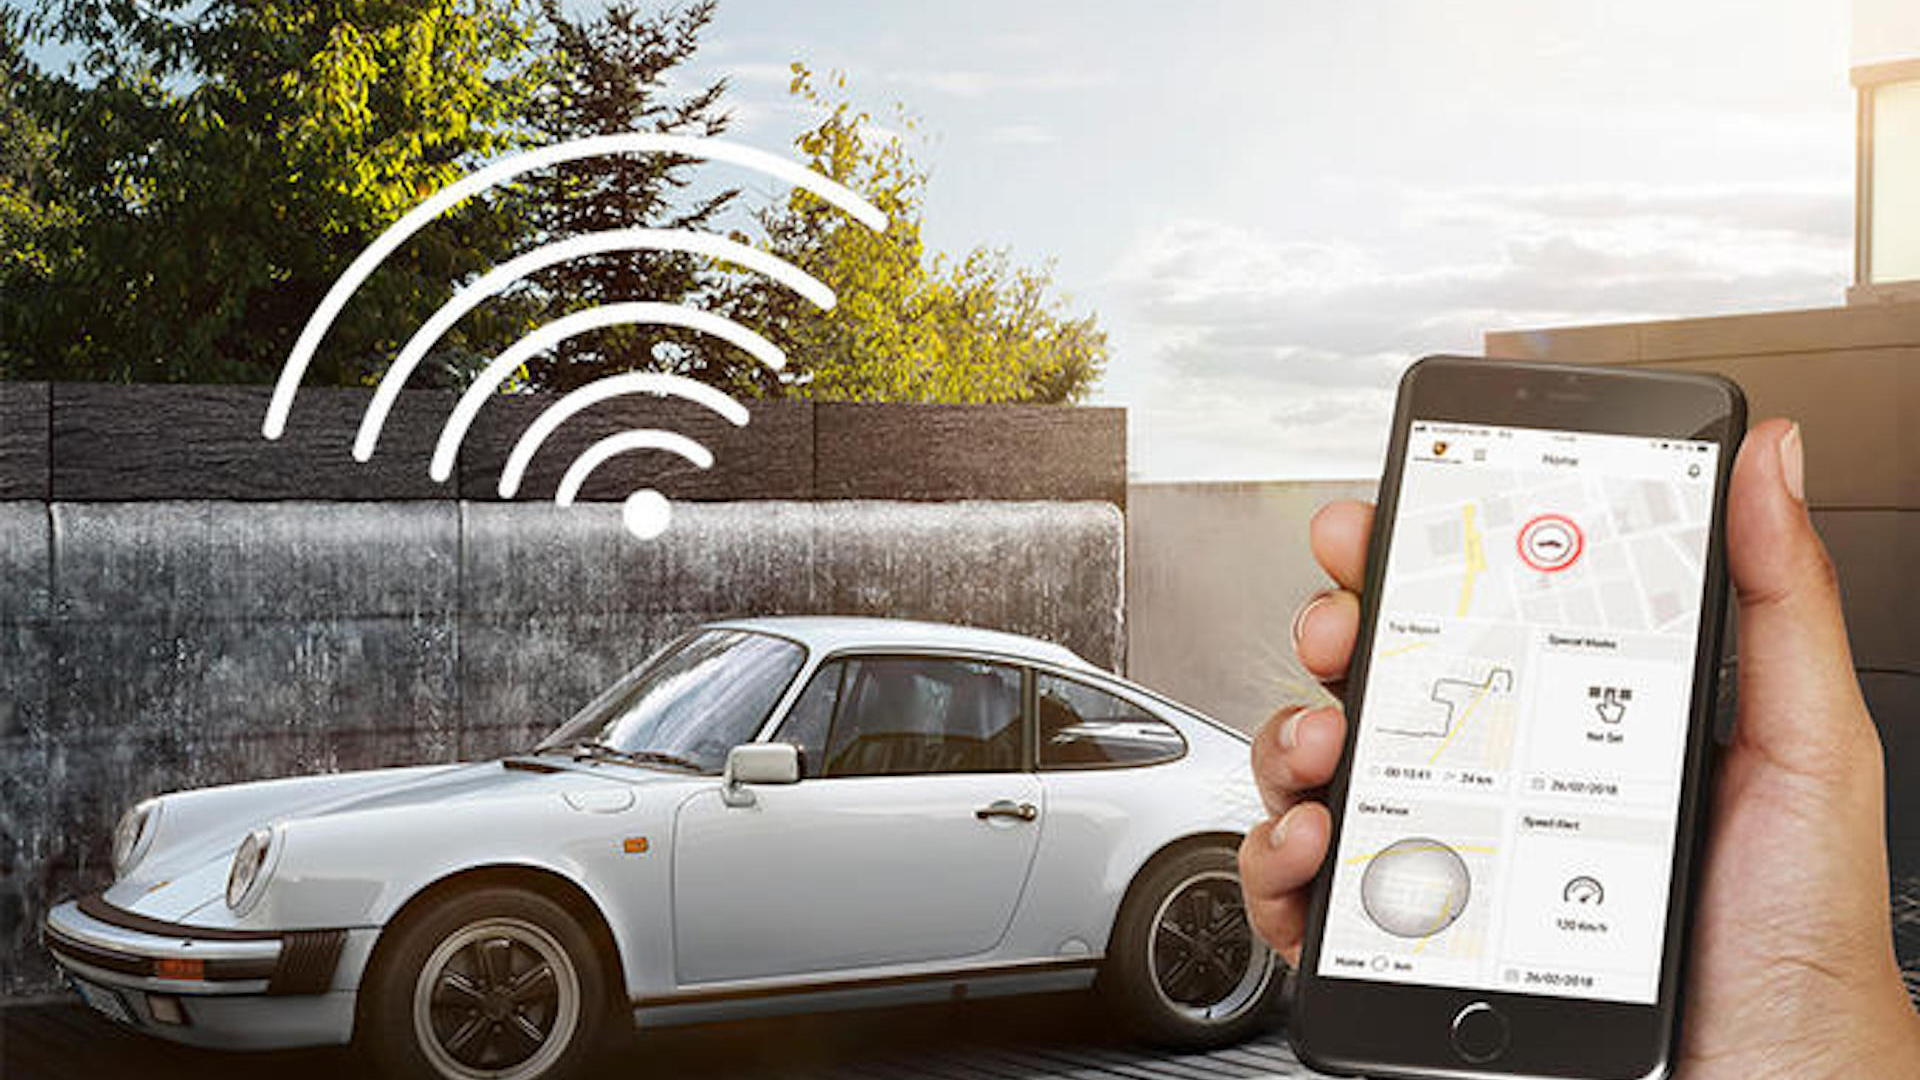 Porsche Classic Vehicle Tracking and Security system